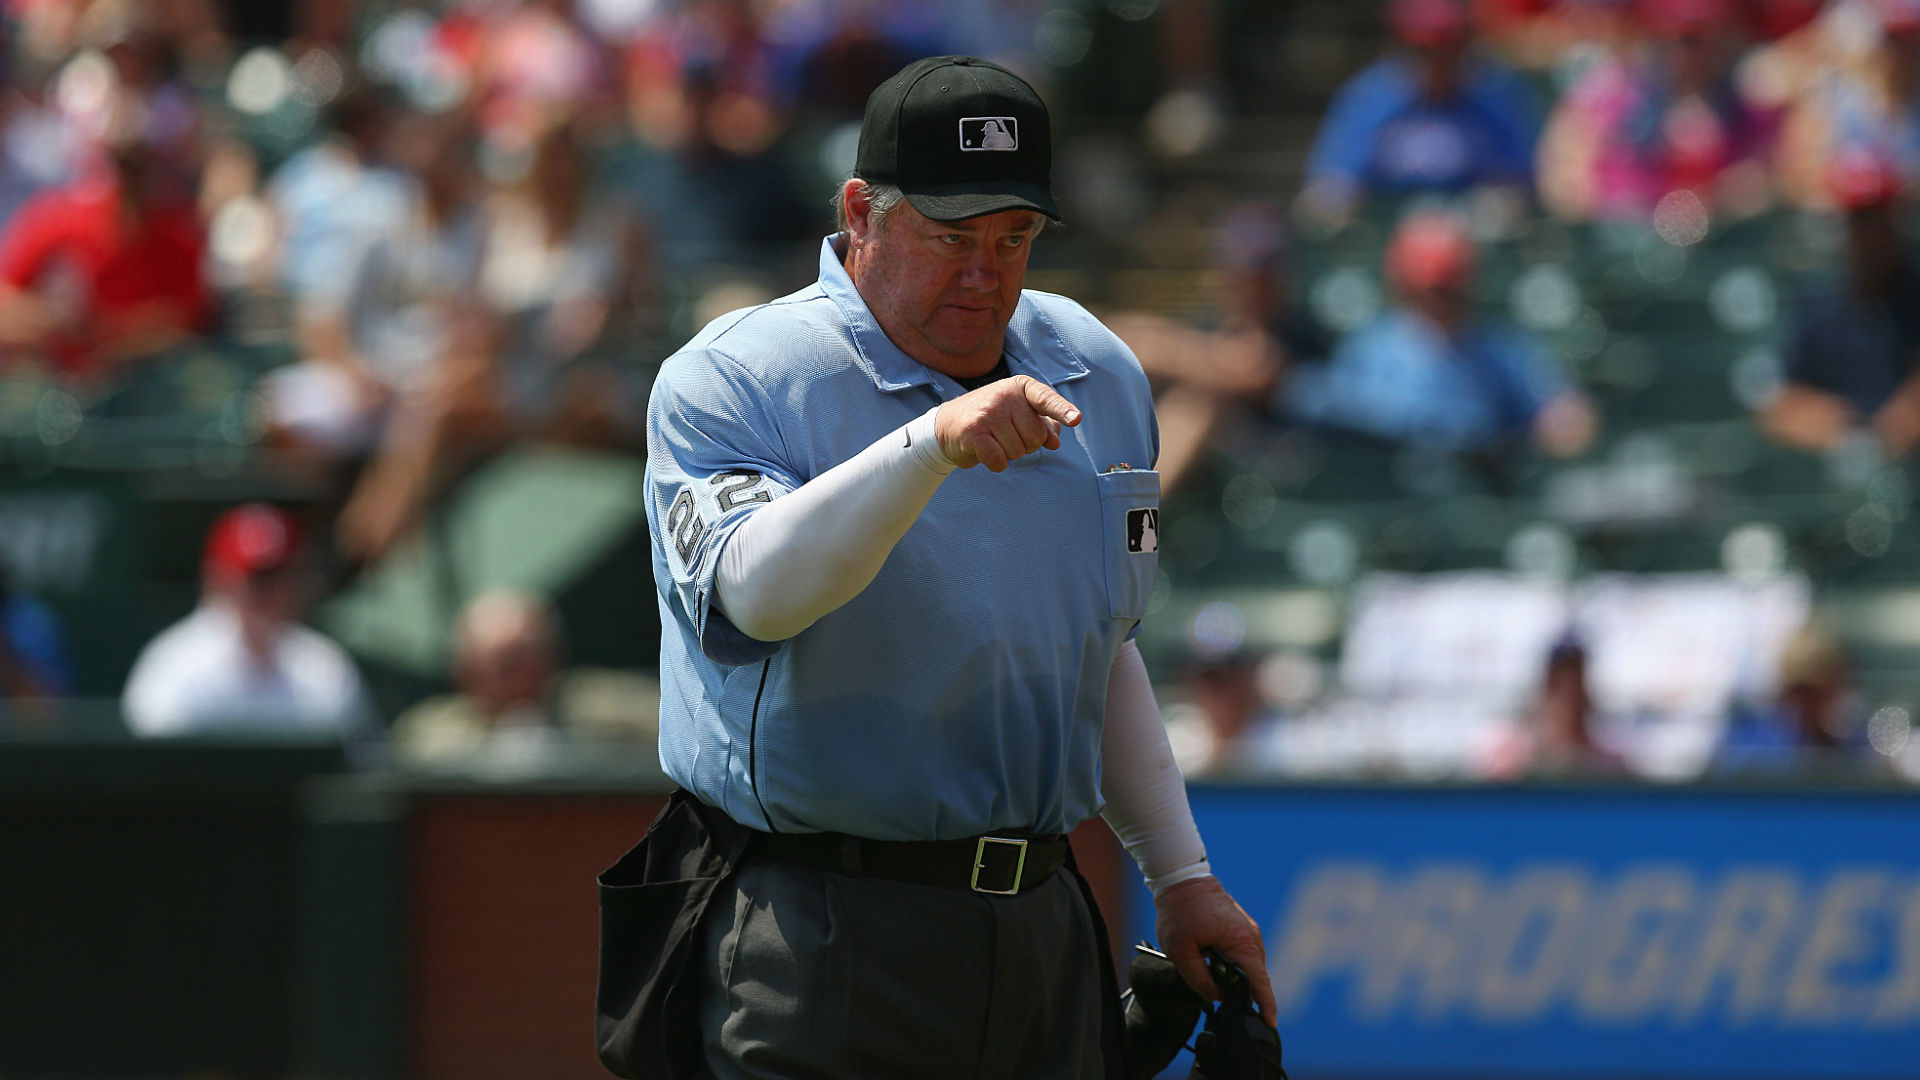 Major League Baseball suspends umpire for comments on Rangers' Beltre